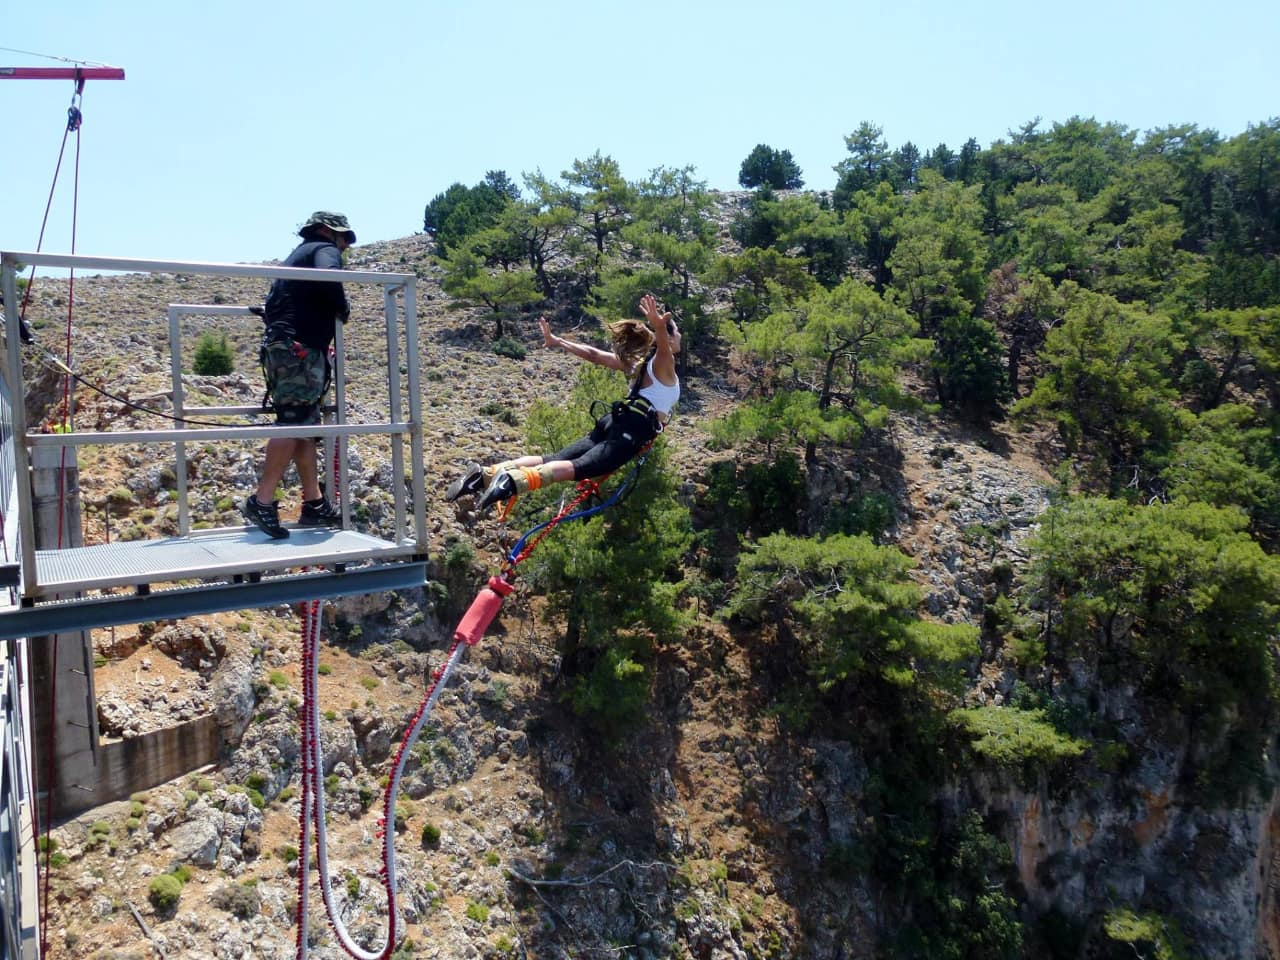 The_Bridge_Of_Aradena_-_Best_Point_For_Bungee_Jumping_In_Crete